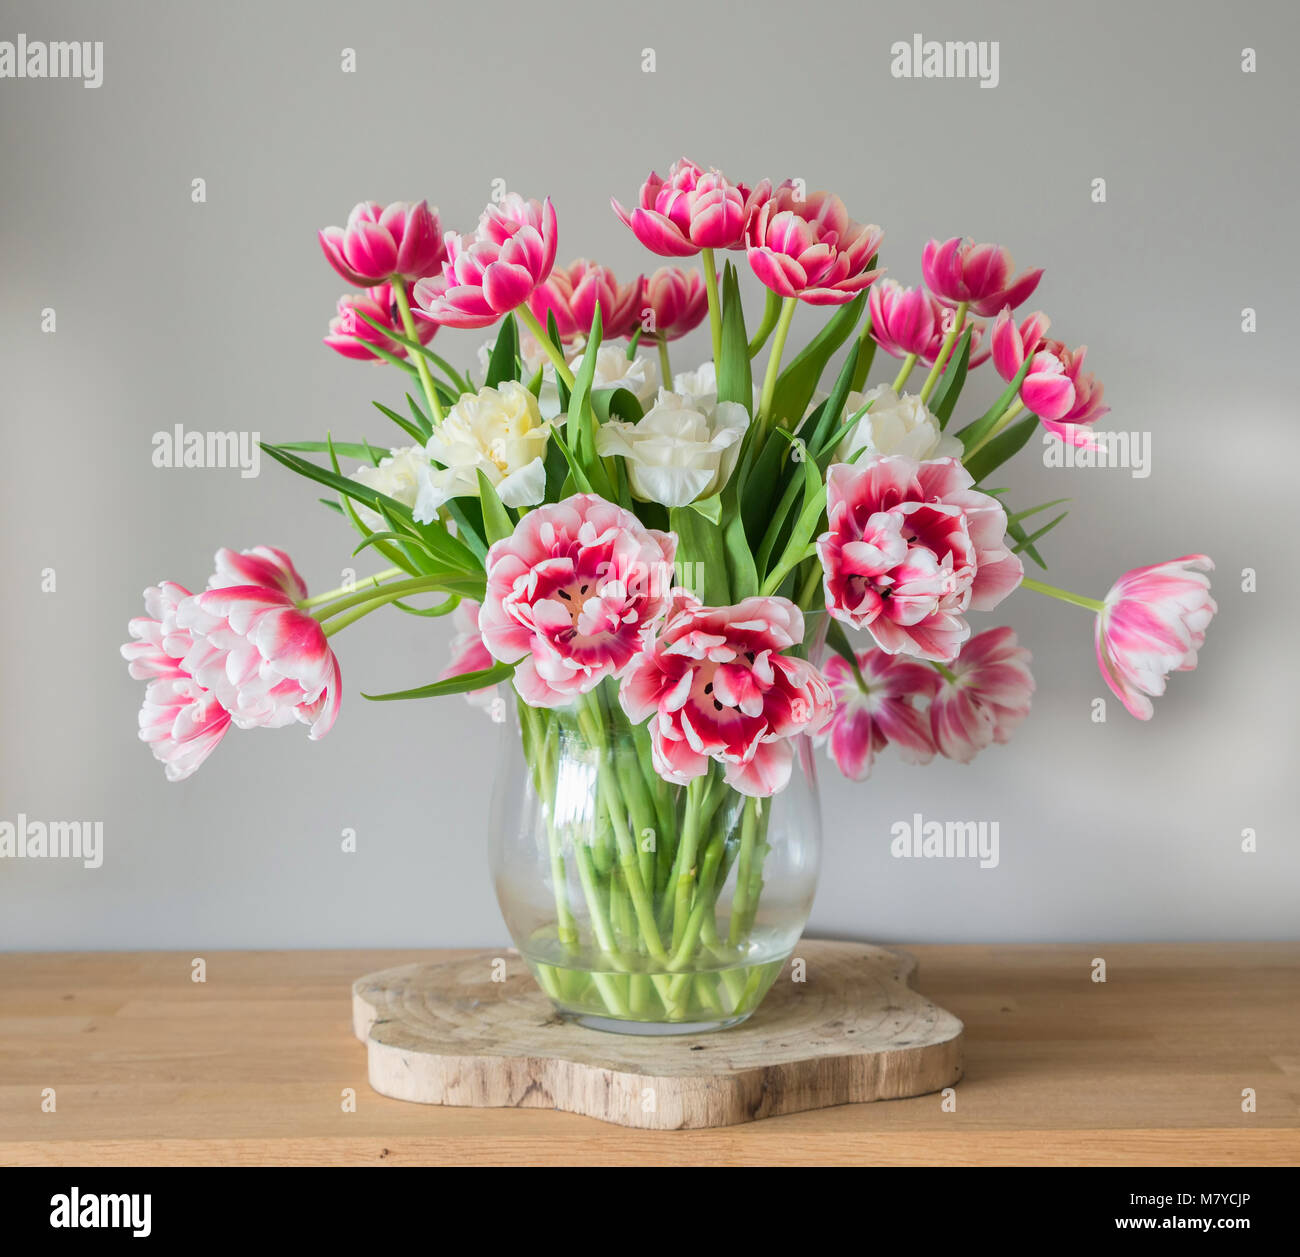 Pink double tulips stock photos pink double tulips stock images vase with double dutch tulips stock image reviewsmspy